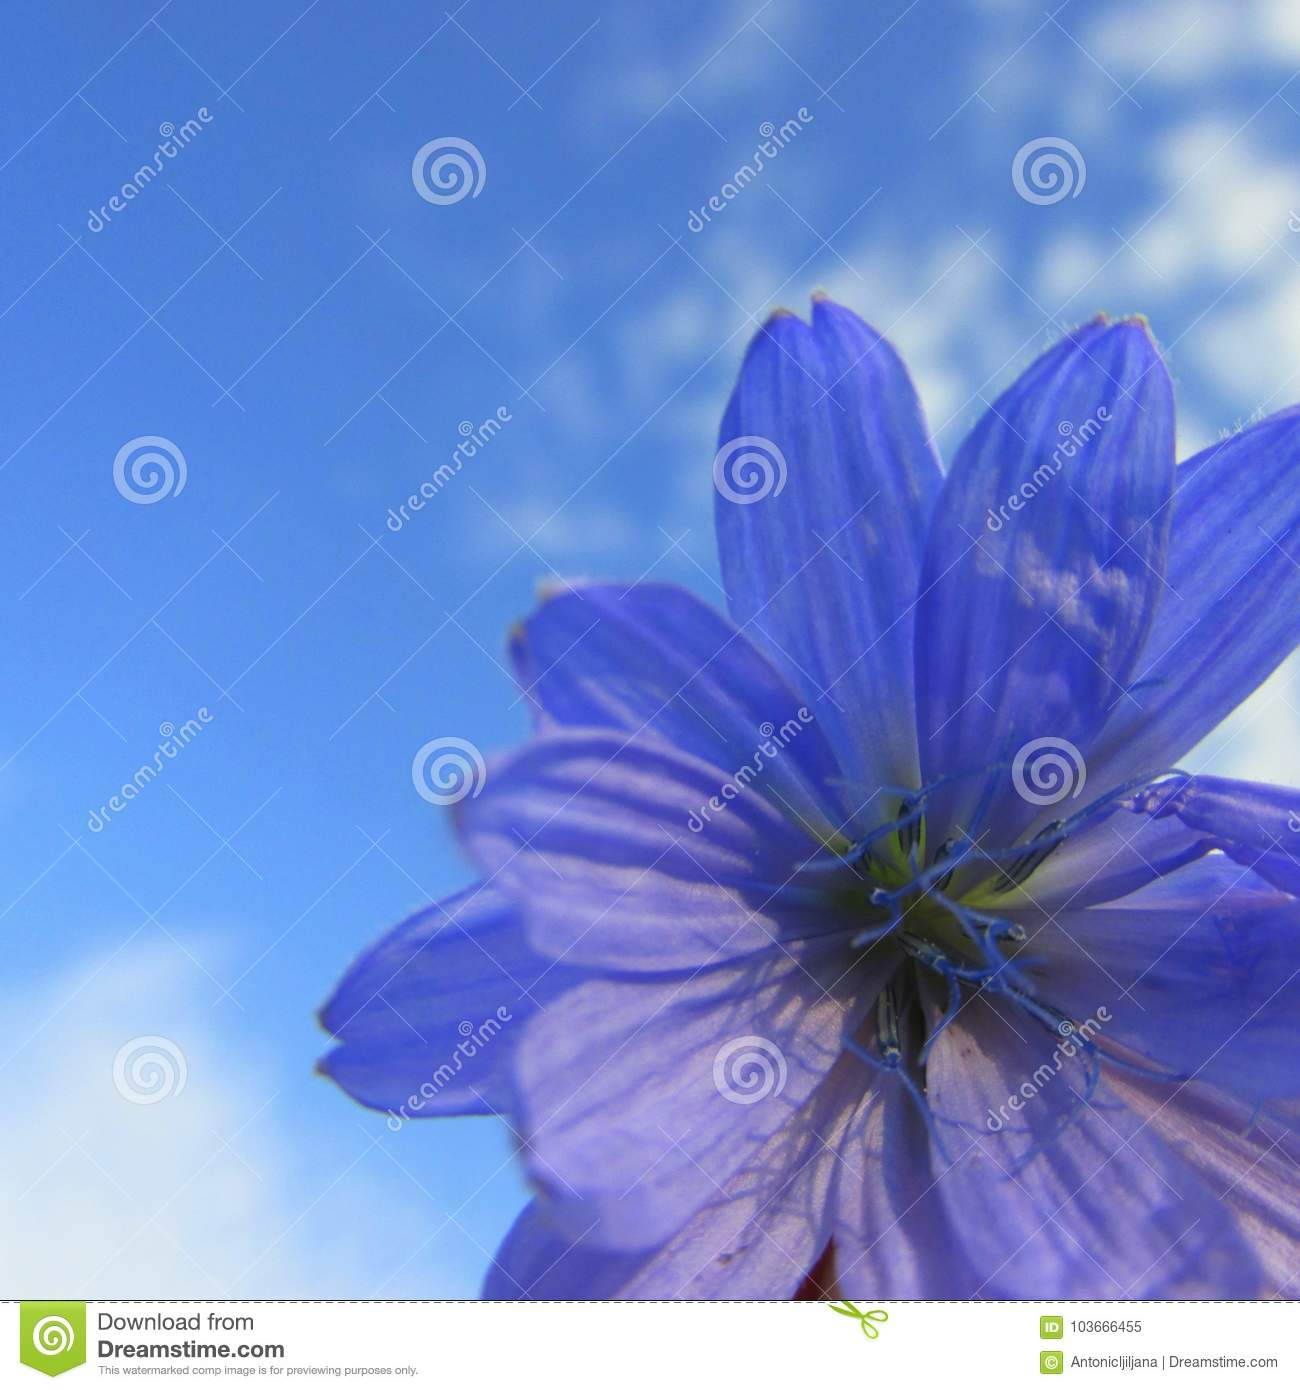 Blue And Violet Beautiful Flower On Blue Sky Background Stock Image